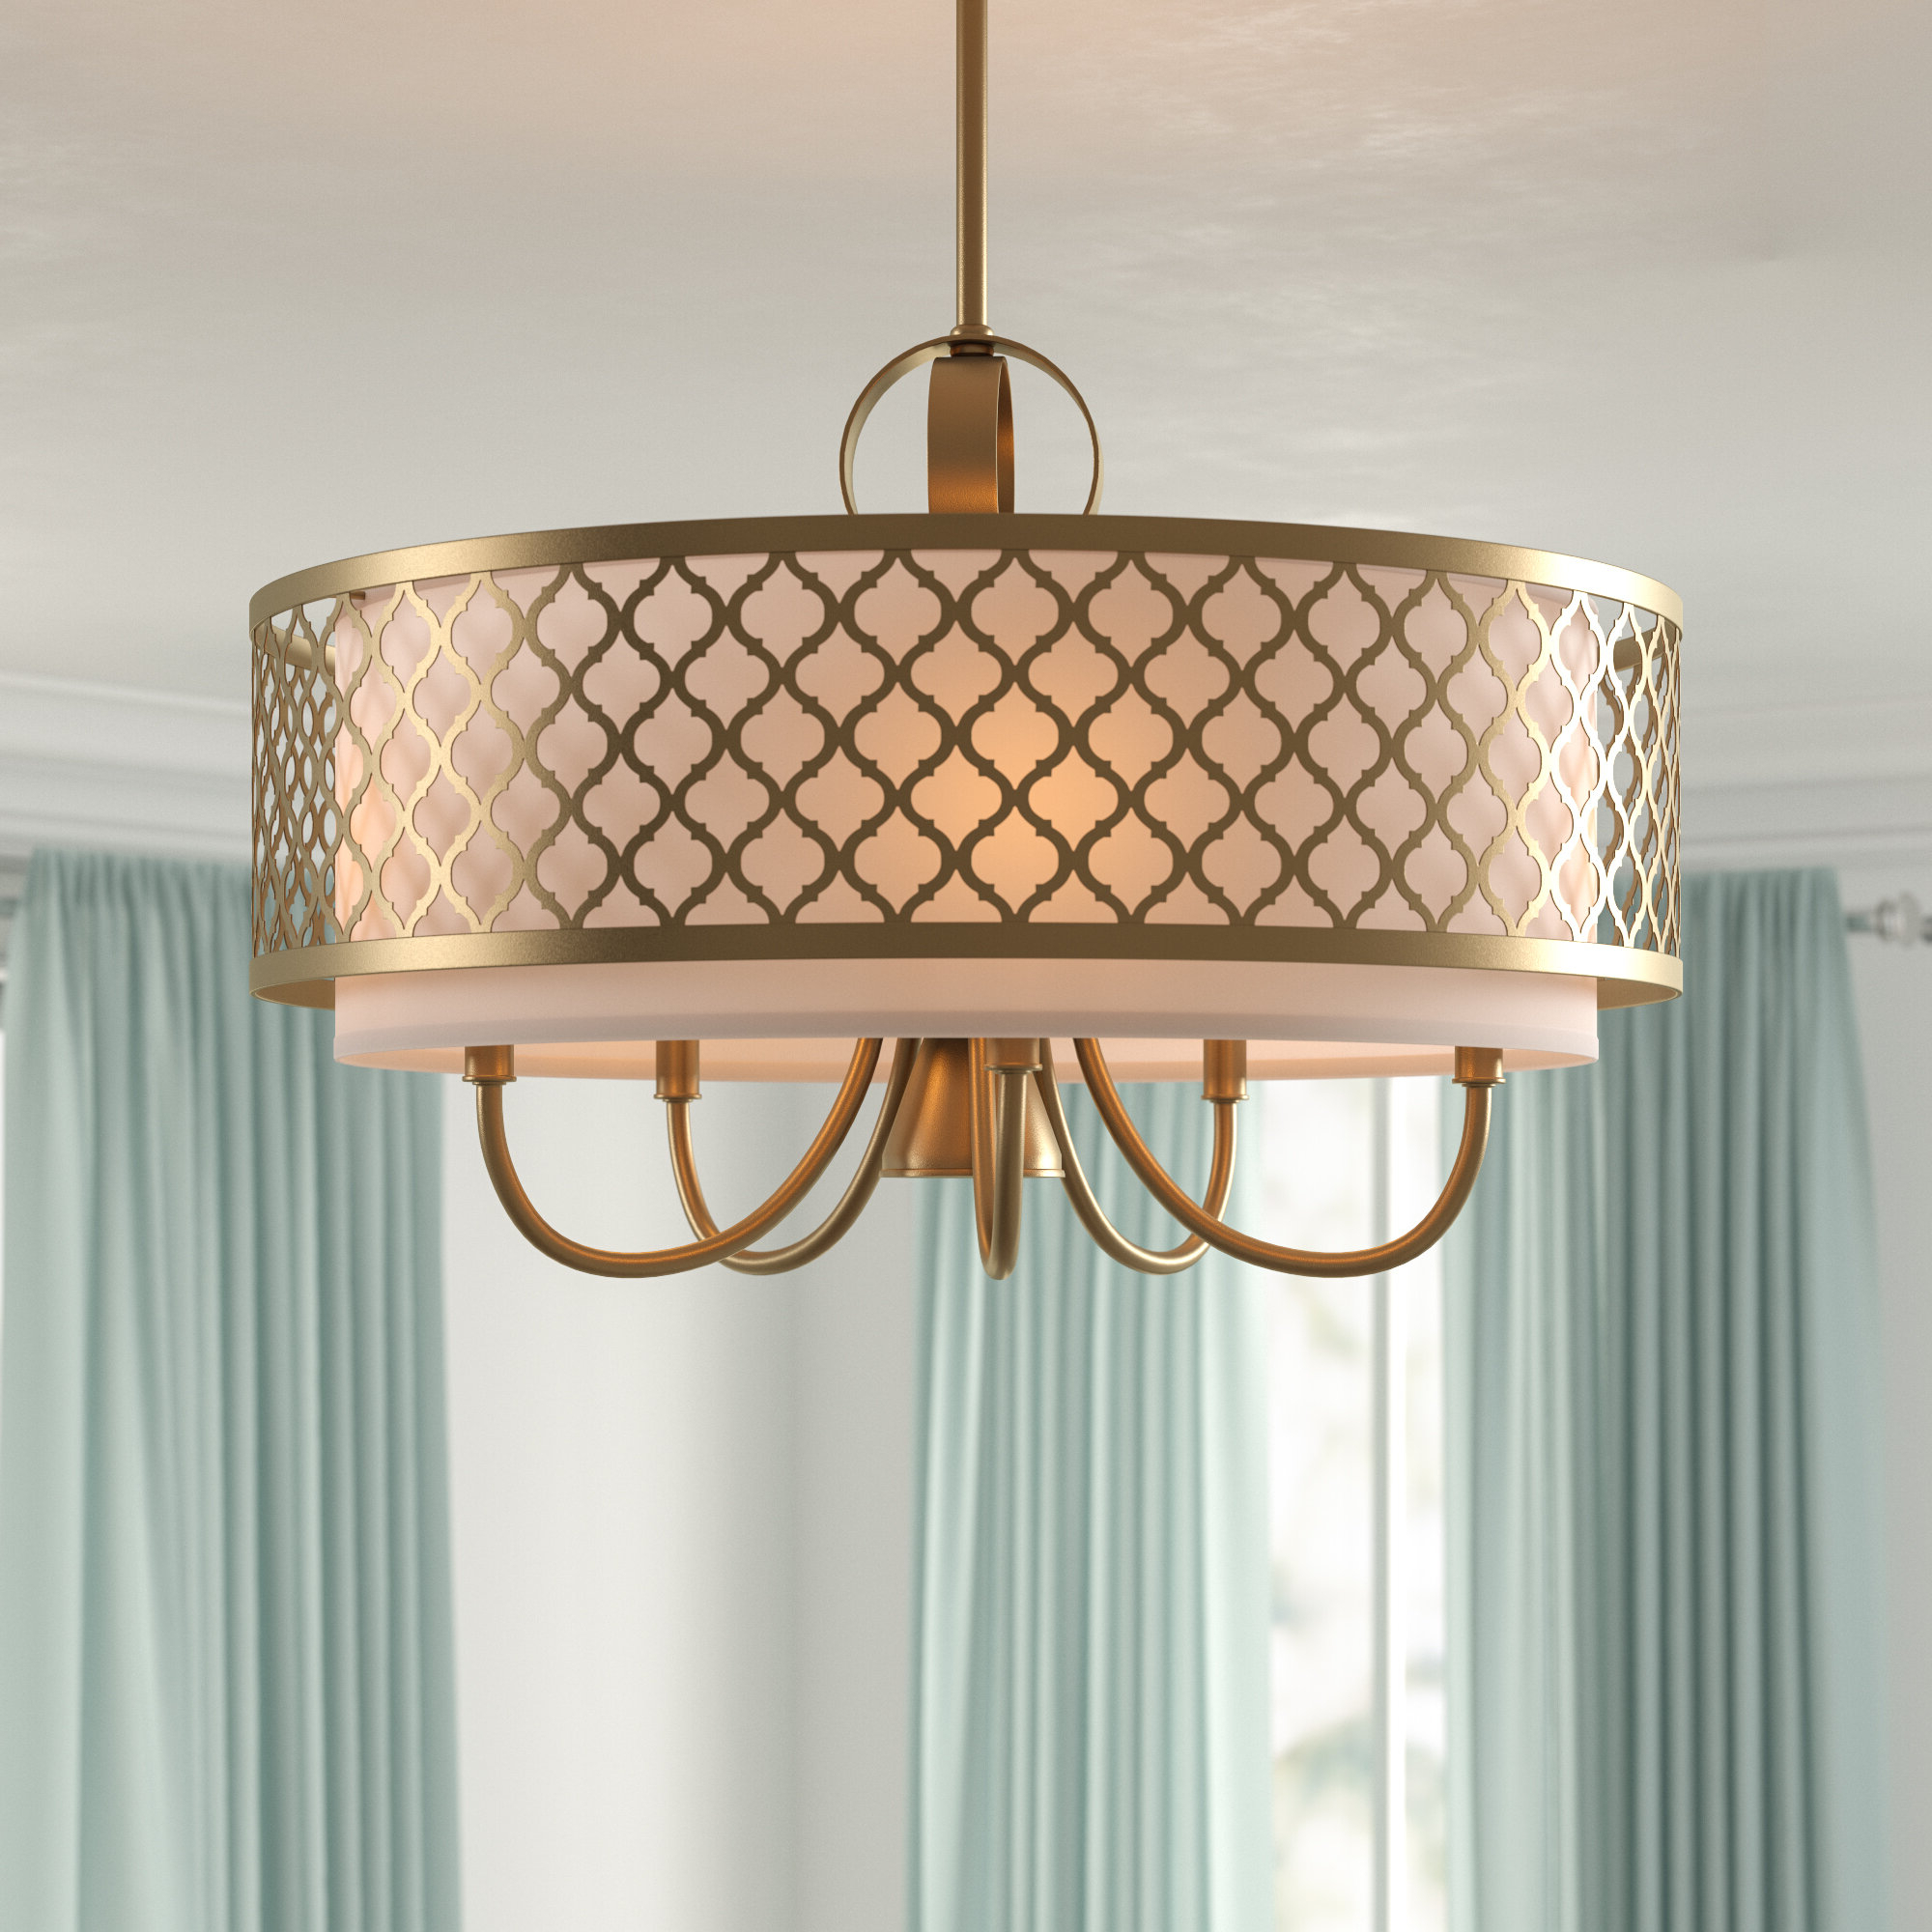 Harlan 5 Light Drum Chandeliers For Most Up To Date Tymvou 6 Light Drum Chandelier (View 19 of 25)